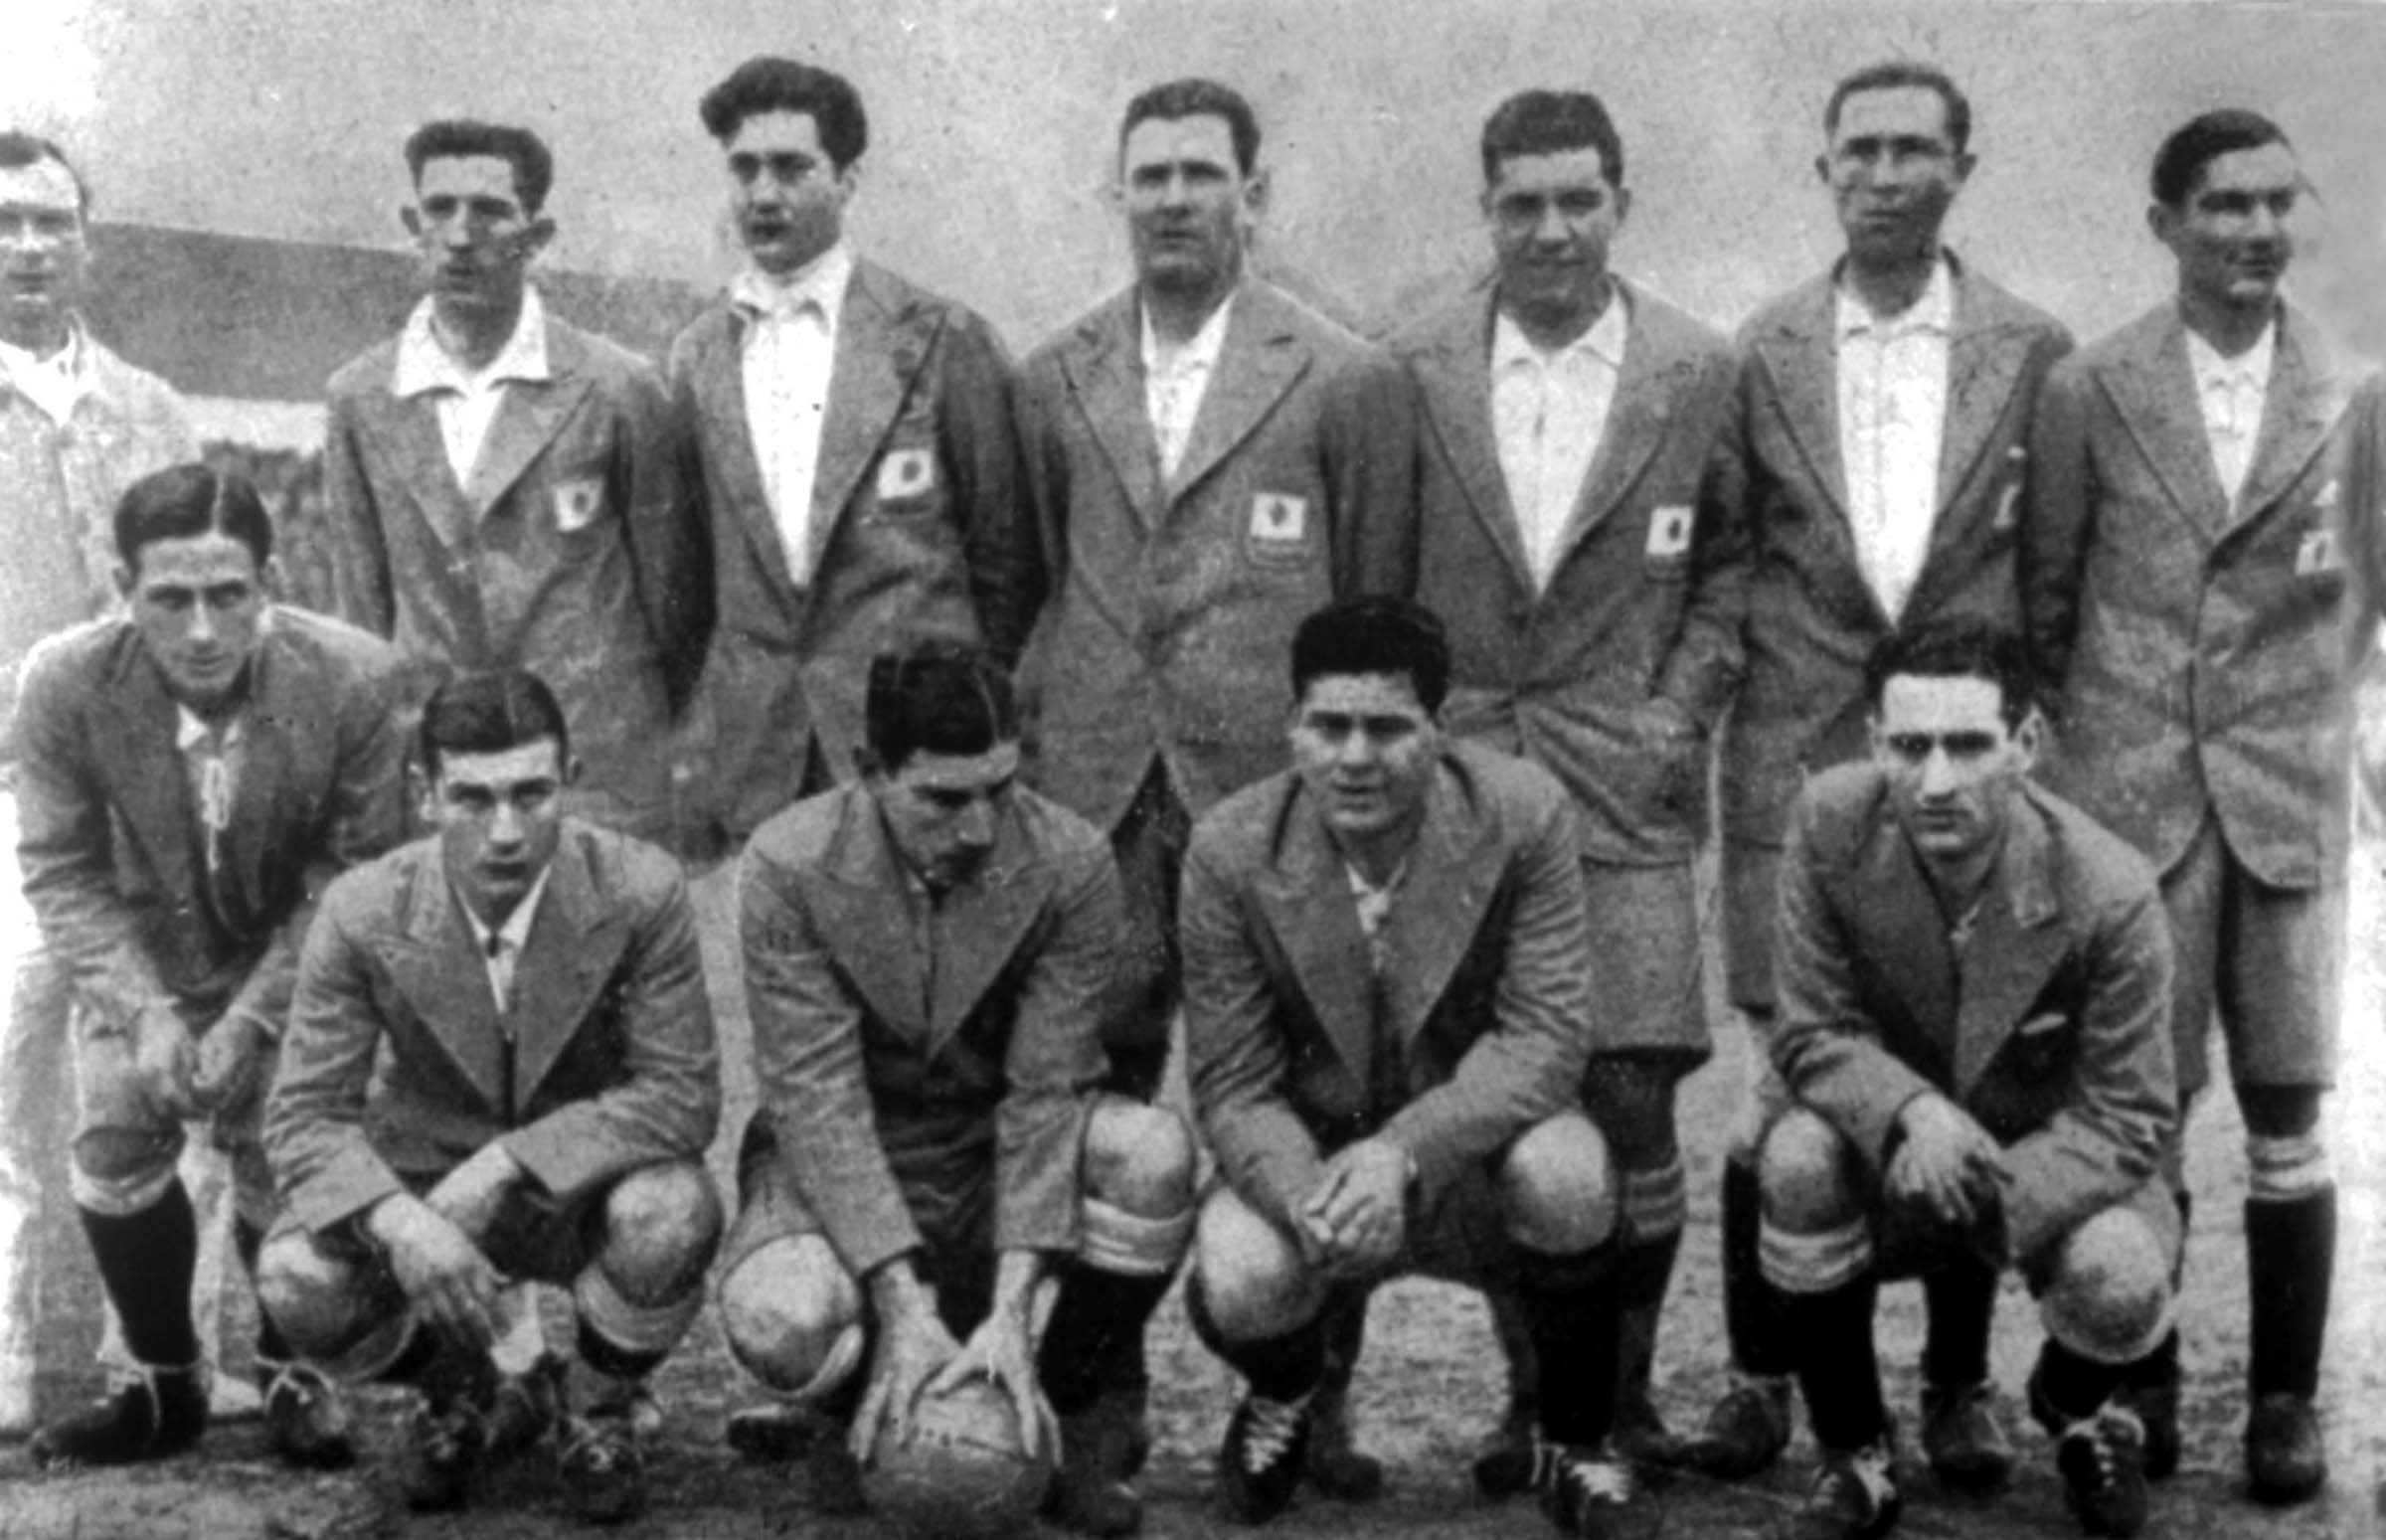 Argentina soccer team poses prior to the start of the World Cup Final, in Montevideo, Uruguay, July 30, 1930. Argentina was defeated by Uruguay 4-2 in the World Cup final. (AP Photo)